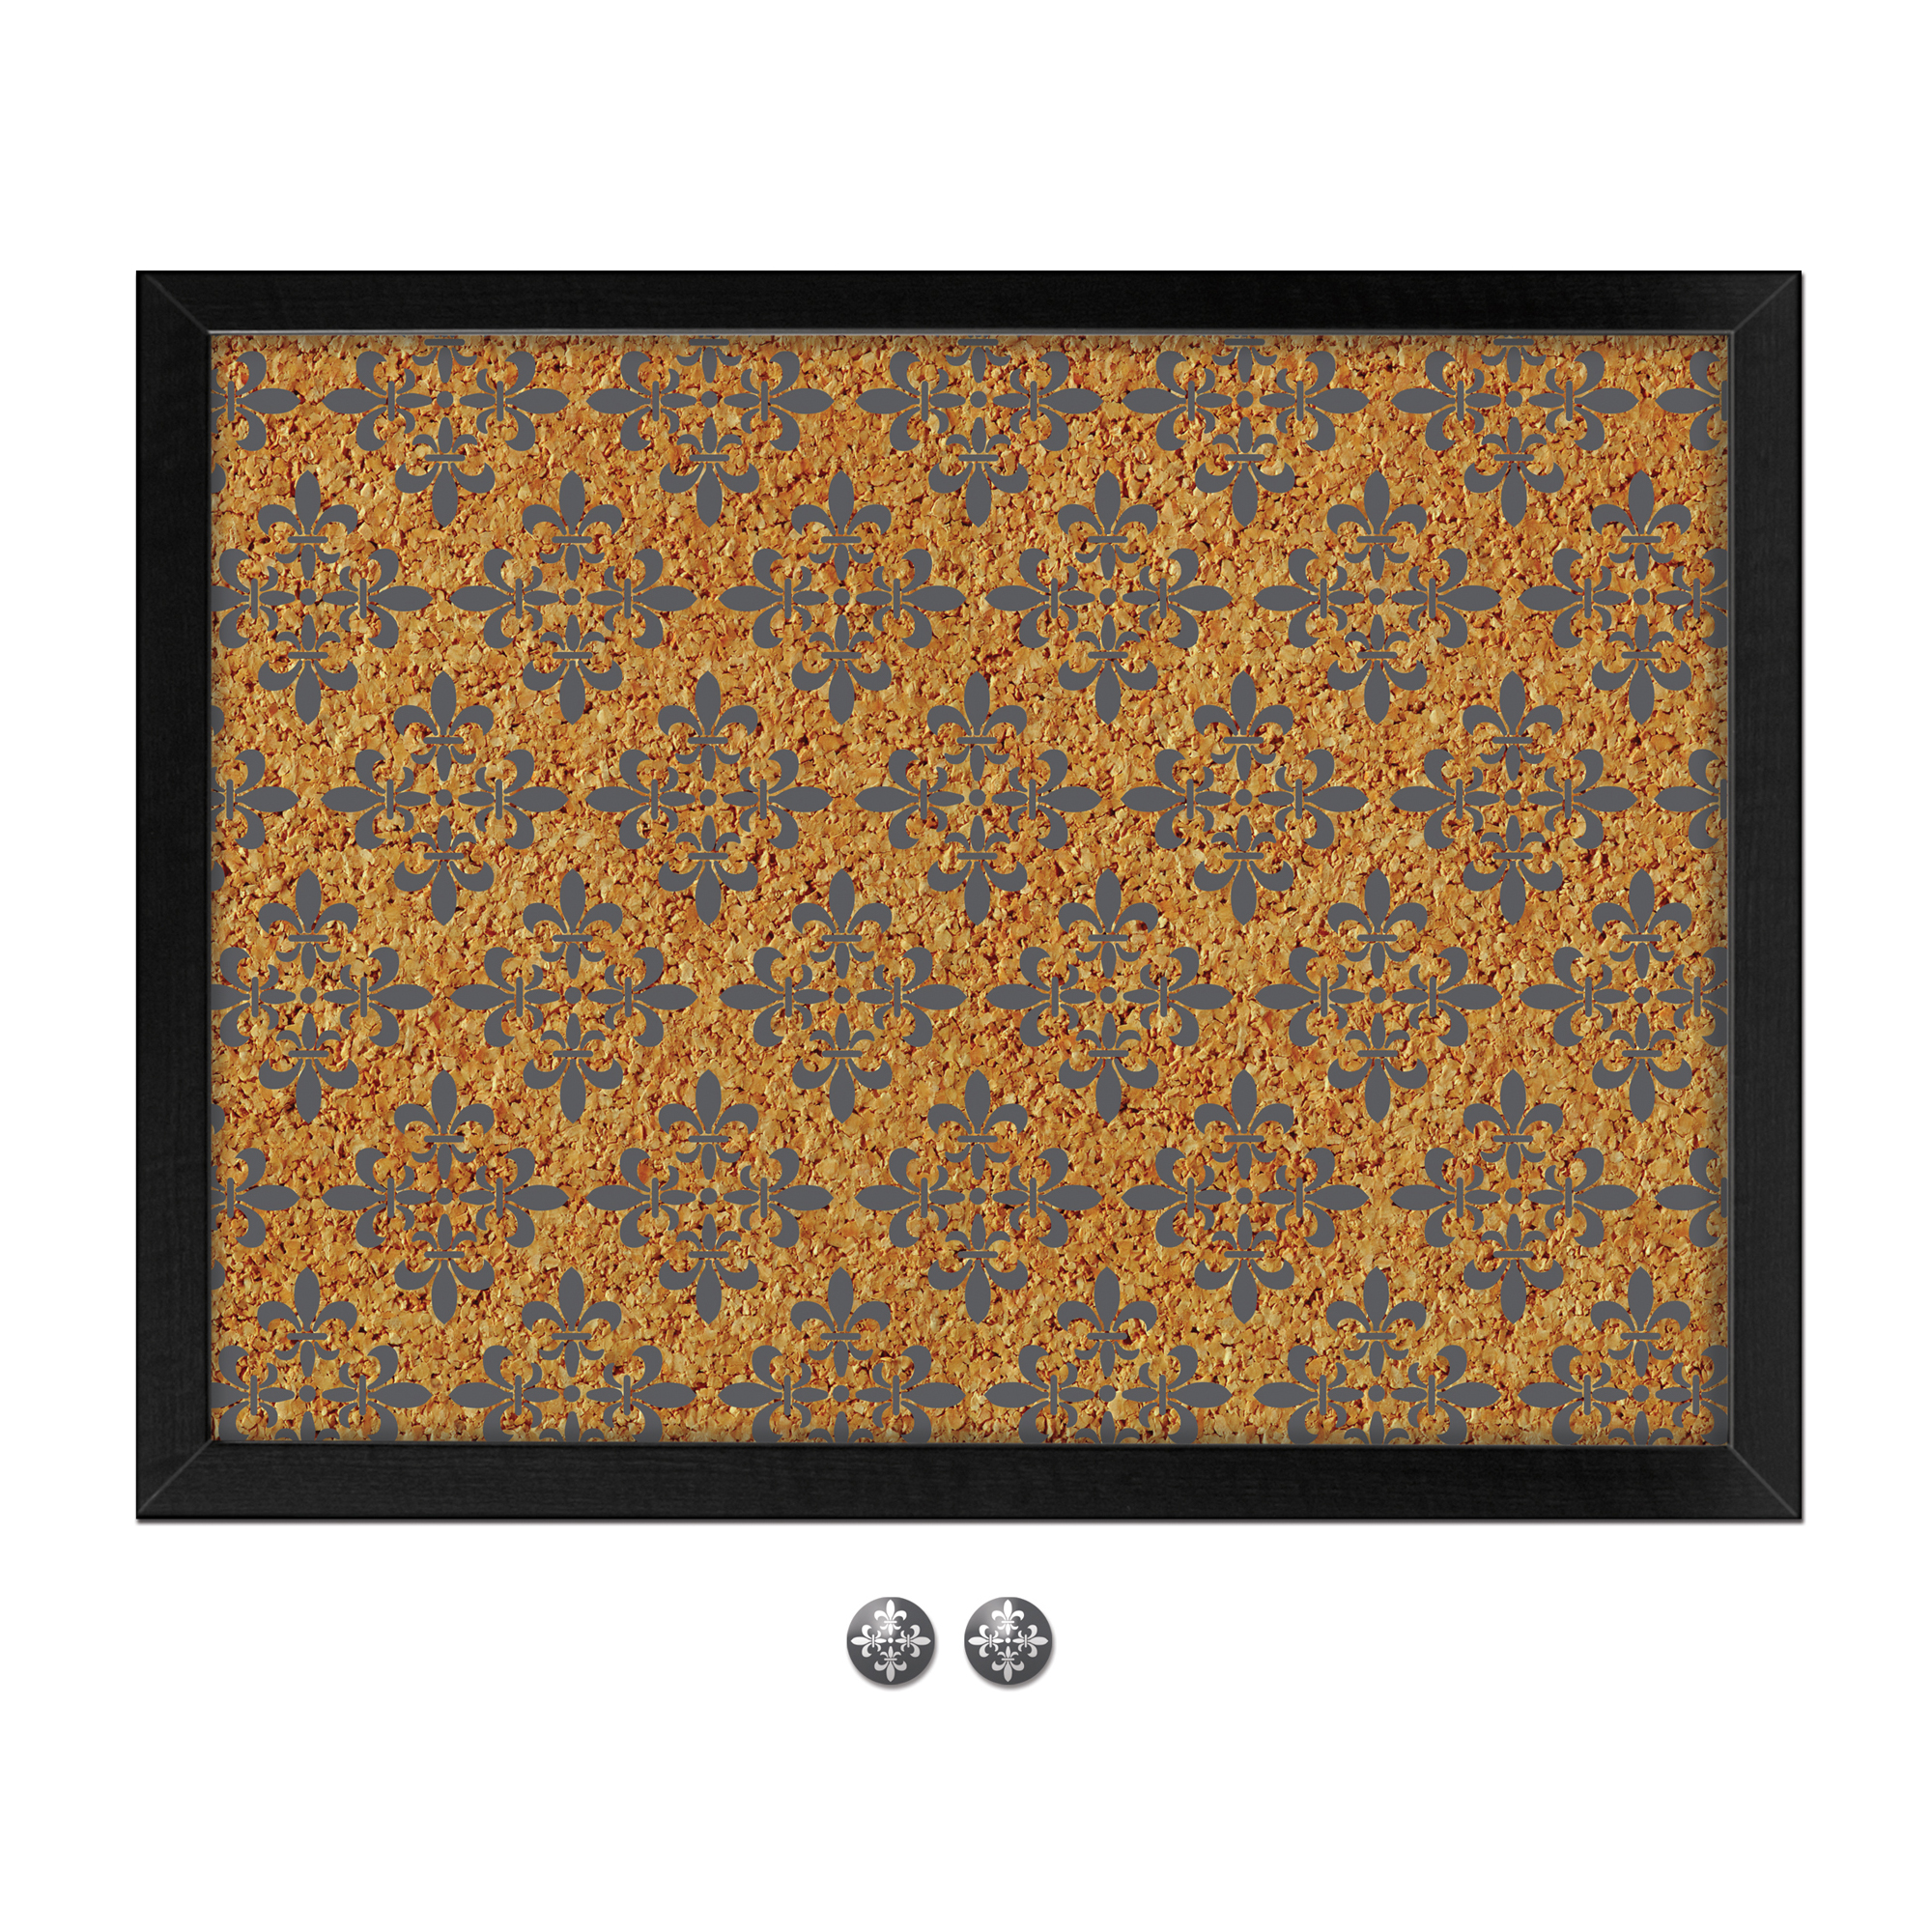 WallPops Veranda Printed Cork Board